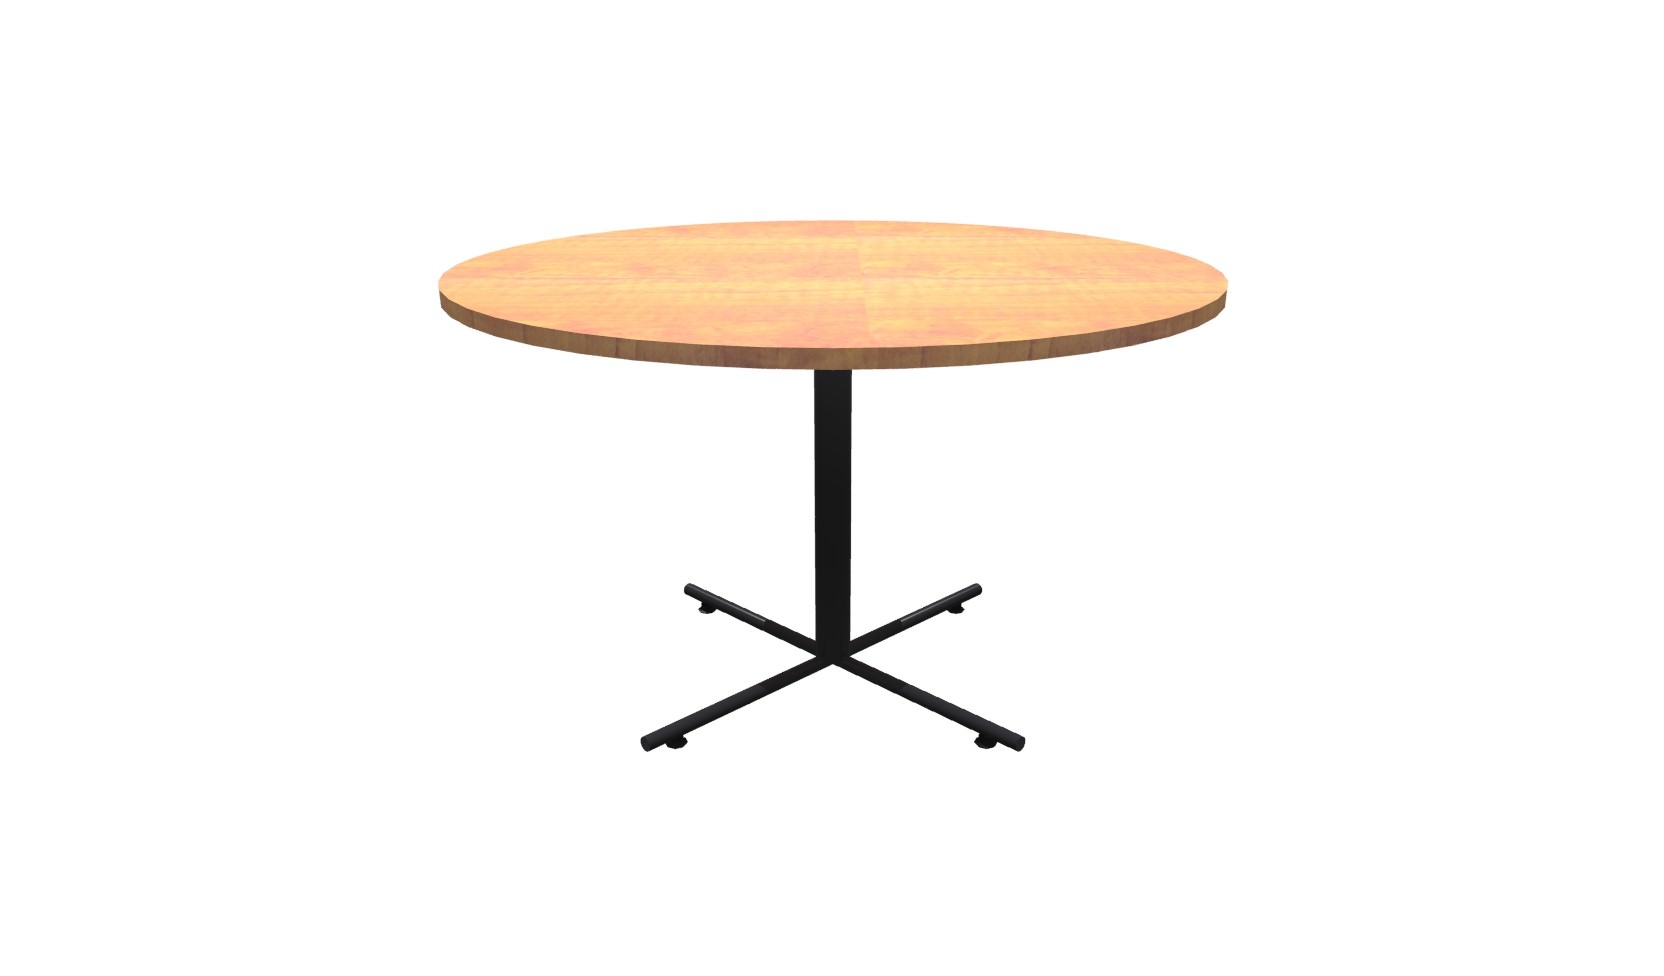 Inch Round Conference Table Honey Black - 48 inch round conference table